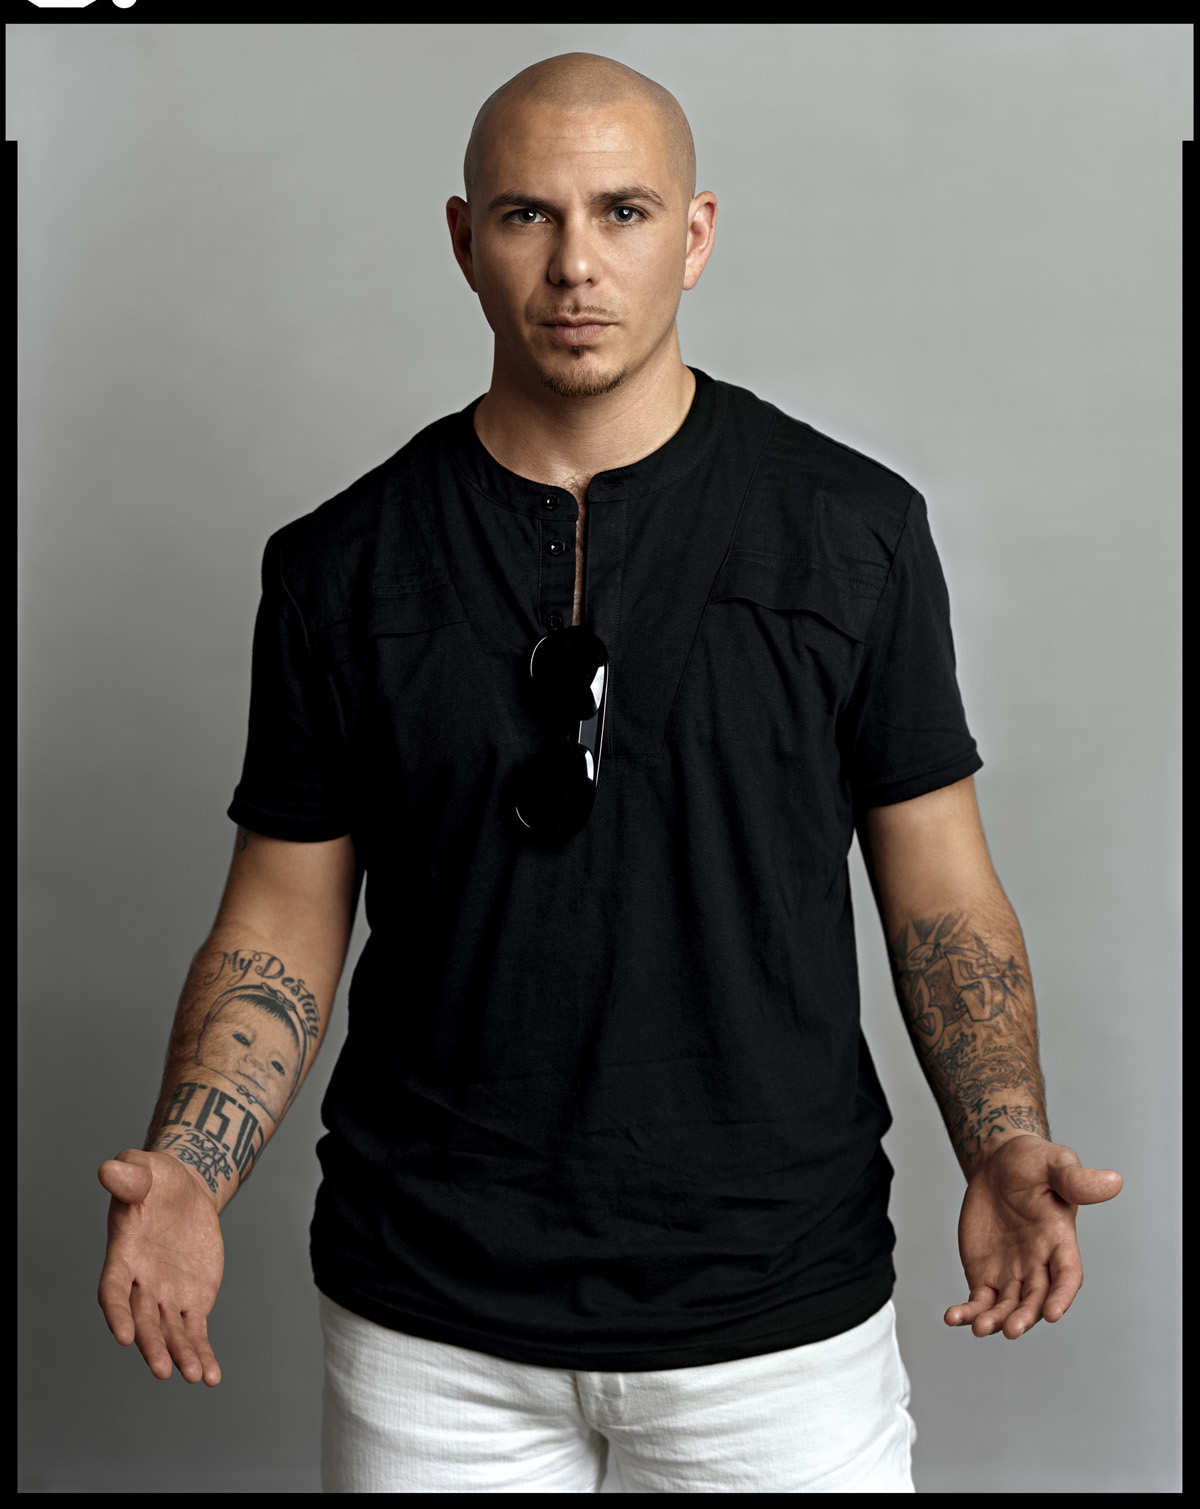 fotos de pitbull 6